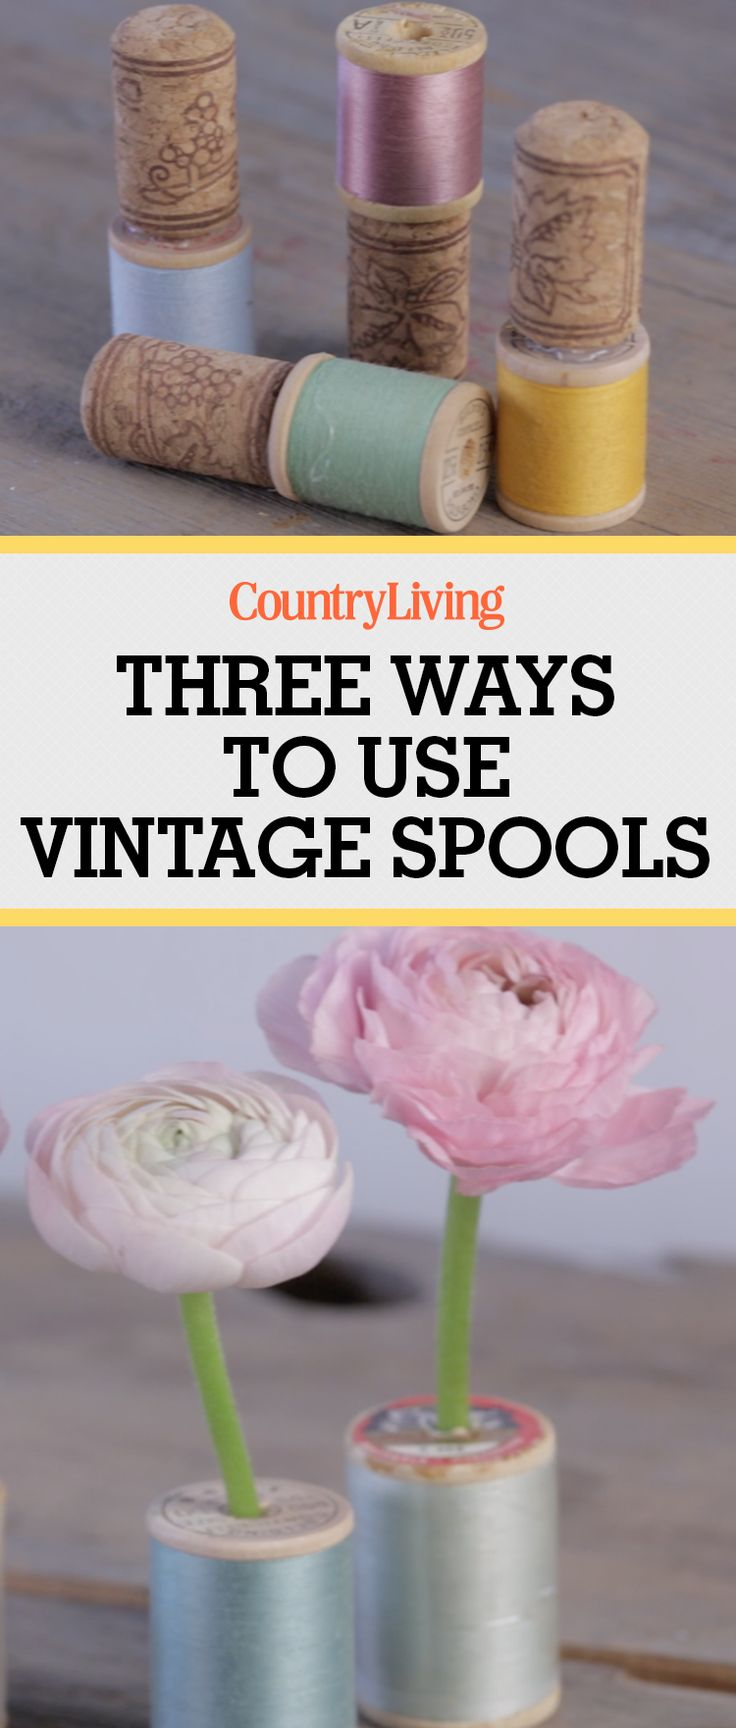 diy crafts projects something recycled materials craft spool wood easy colorful countryliving ways using crafty gifts flowers fun wooden decorations